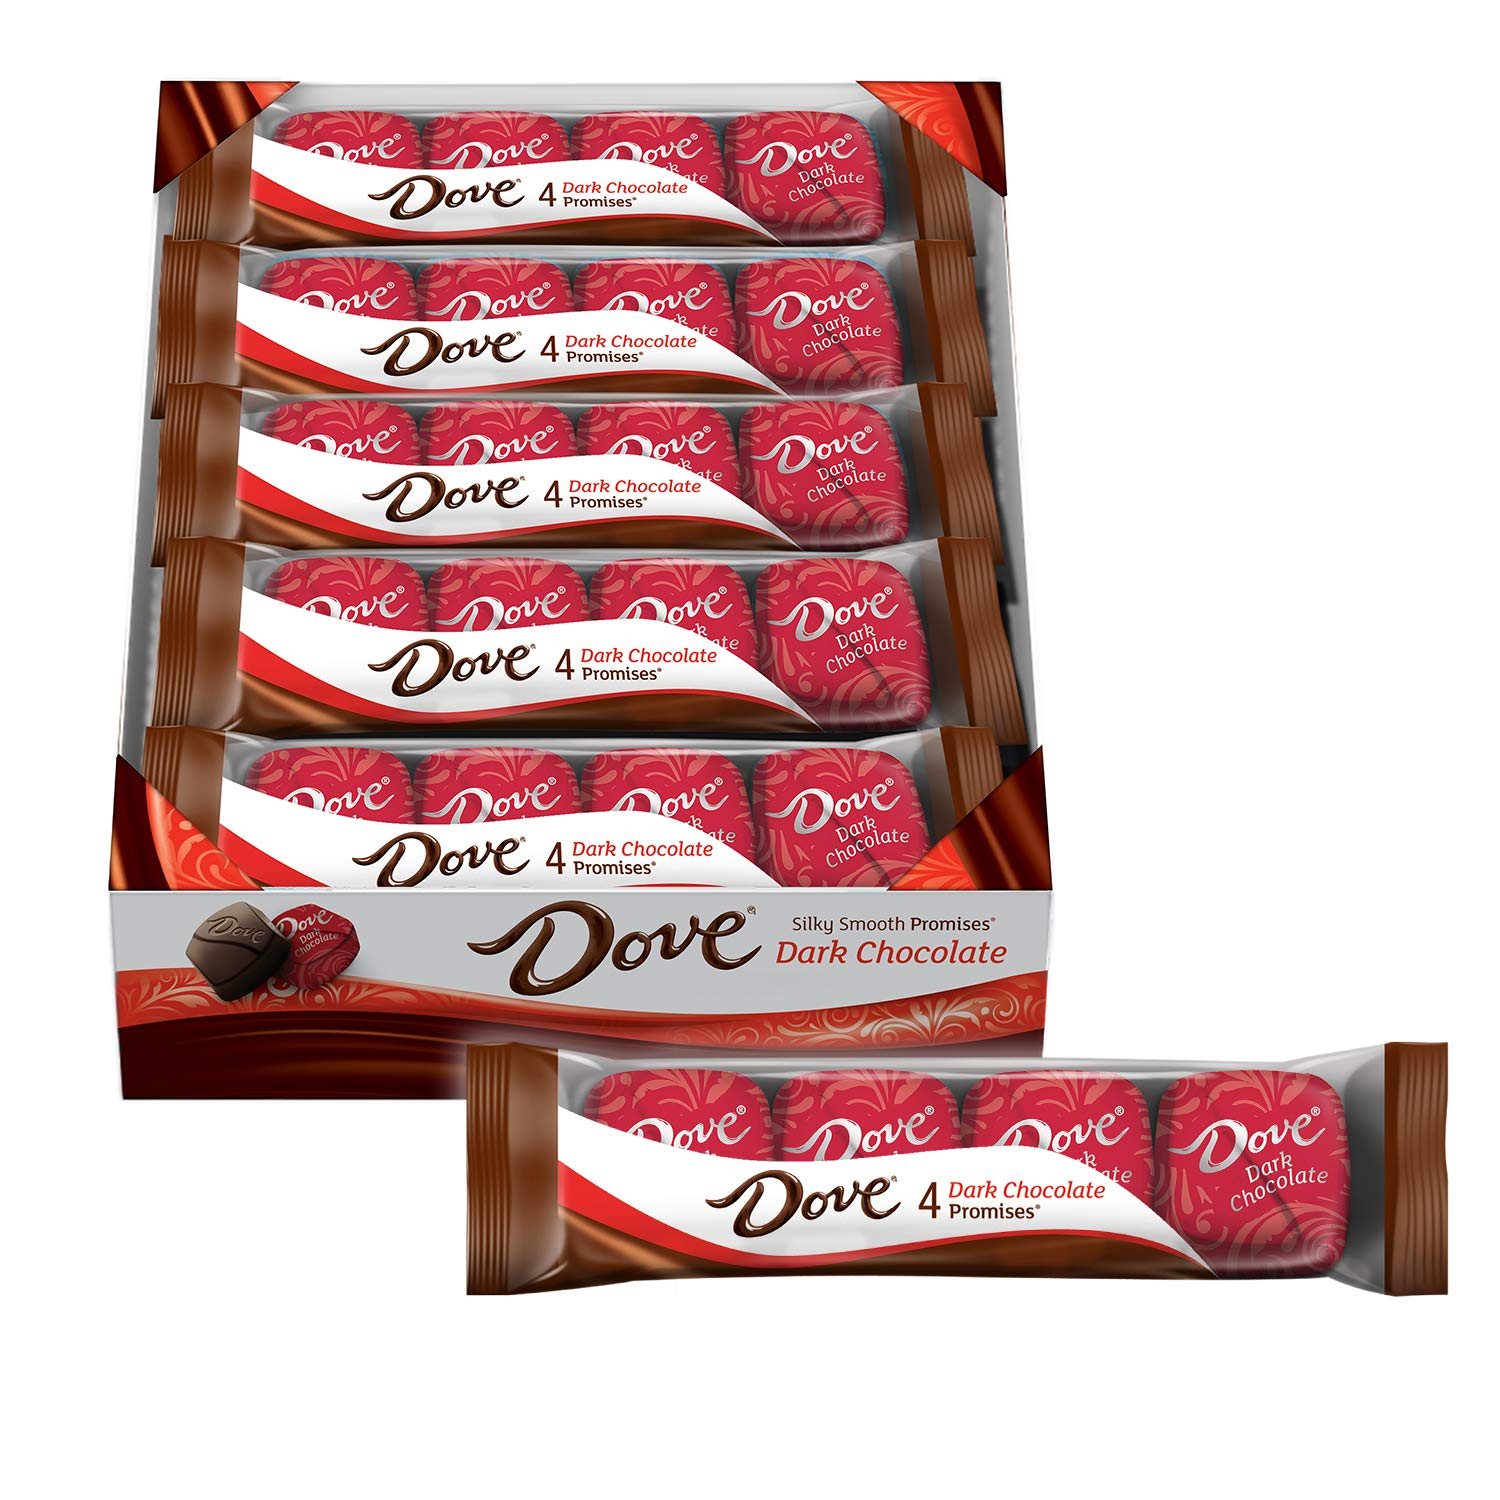 CDM product DOVE PROMISES Dark Chocolate Candy 4-Piece Packs 18-Count Box big image